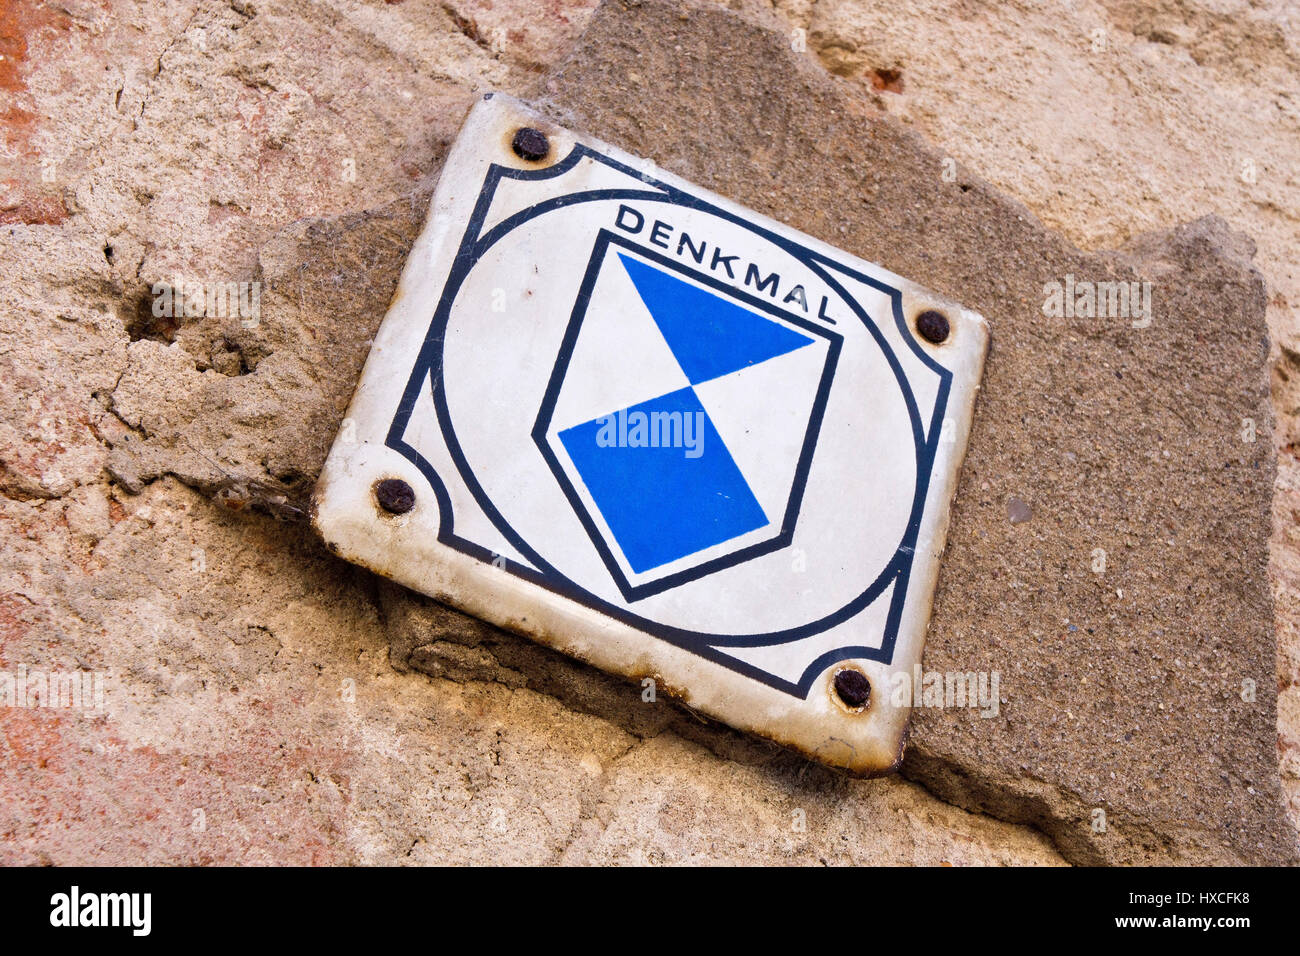 Monument sign in a house in Mecklenburg-West Pomerania, monument sign on a house in Mecklenburg-West Pomerania |, - Stock Image